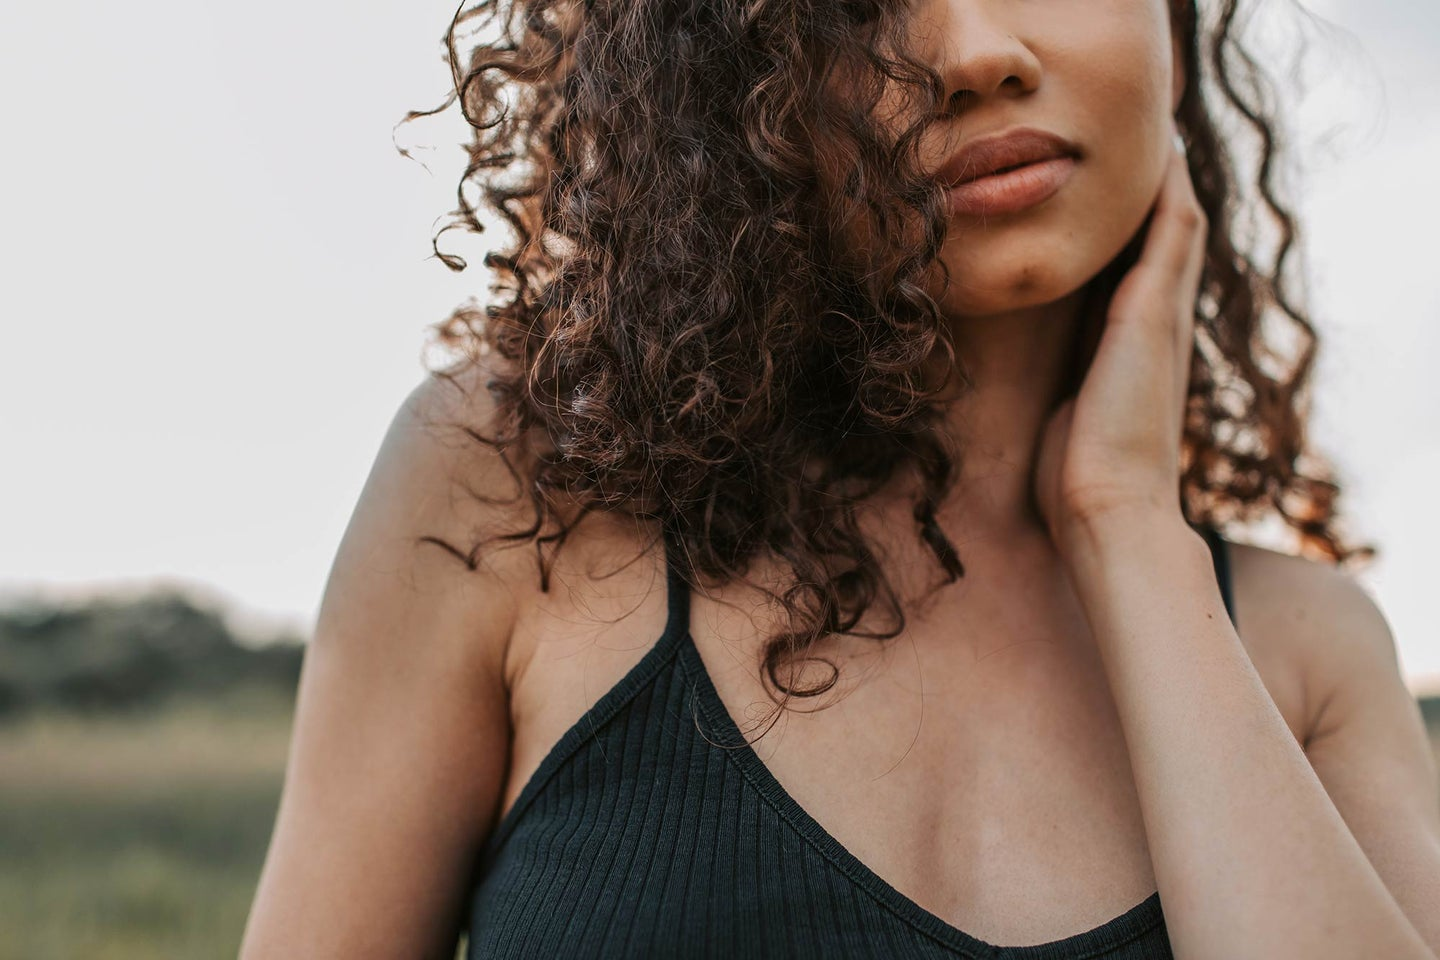 Close up of a women with curly hair wearing a black tank top